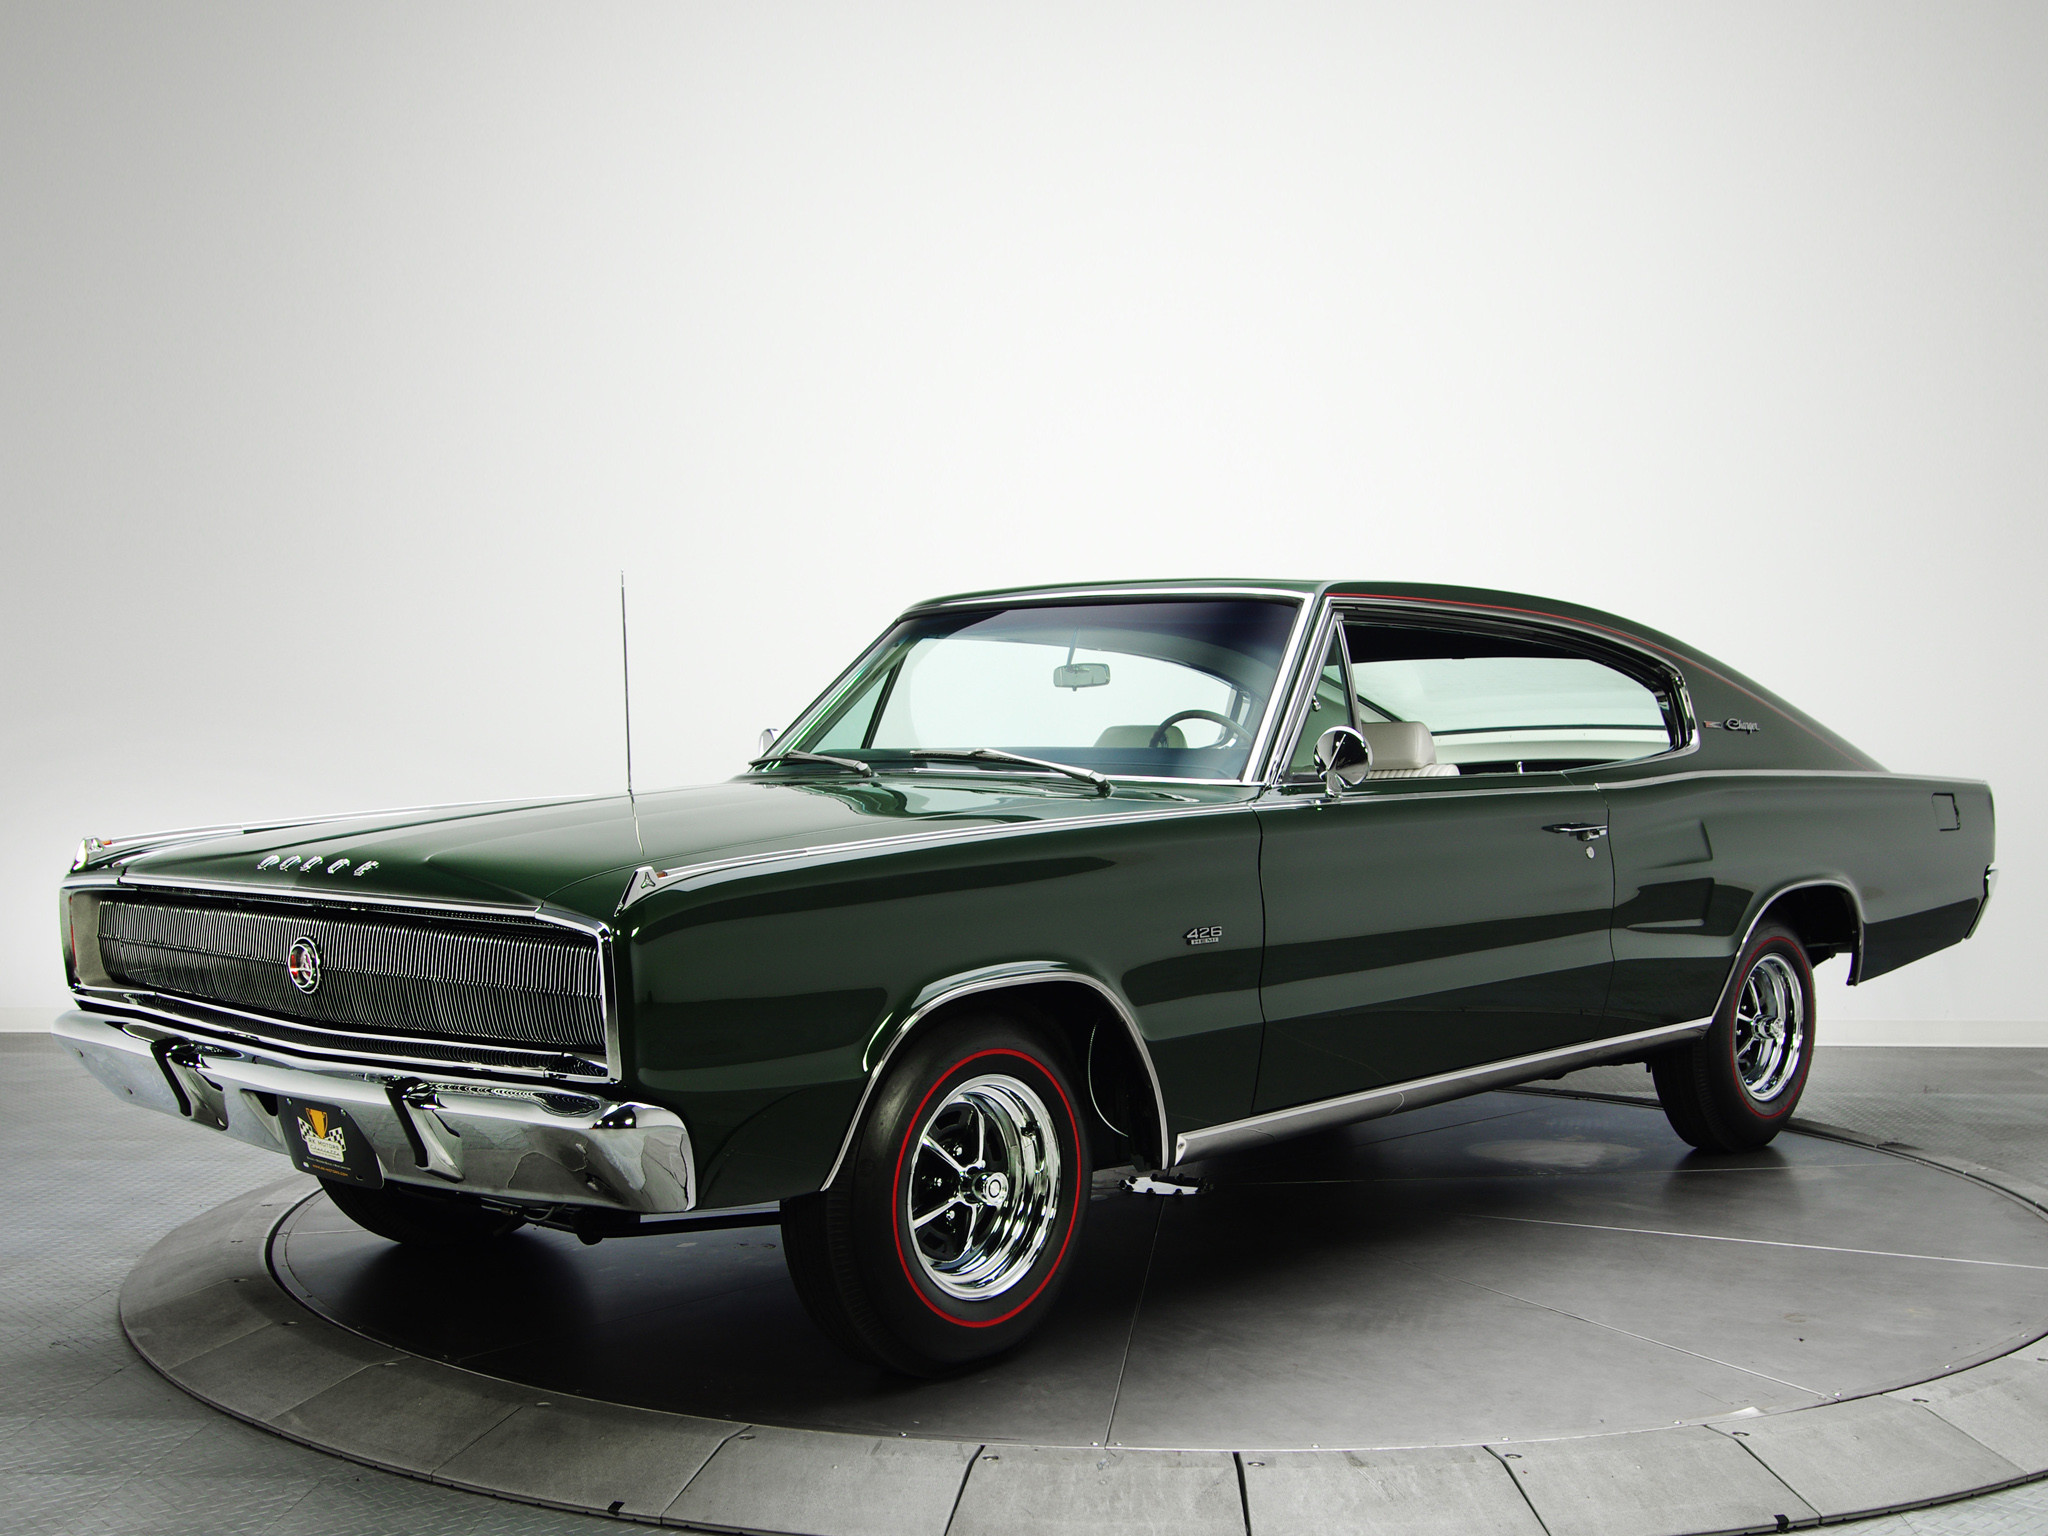 1967 Dodge Charger R-T 426 Hemi muscle classic wallpaper | |  116898 | WallpaperUP